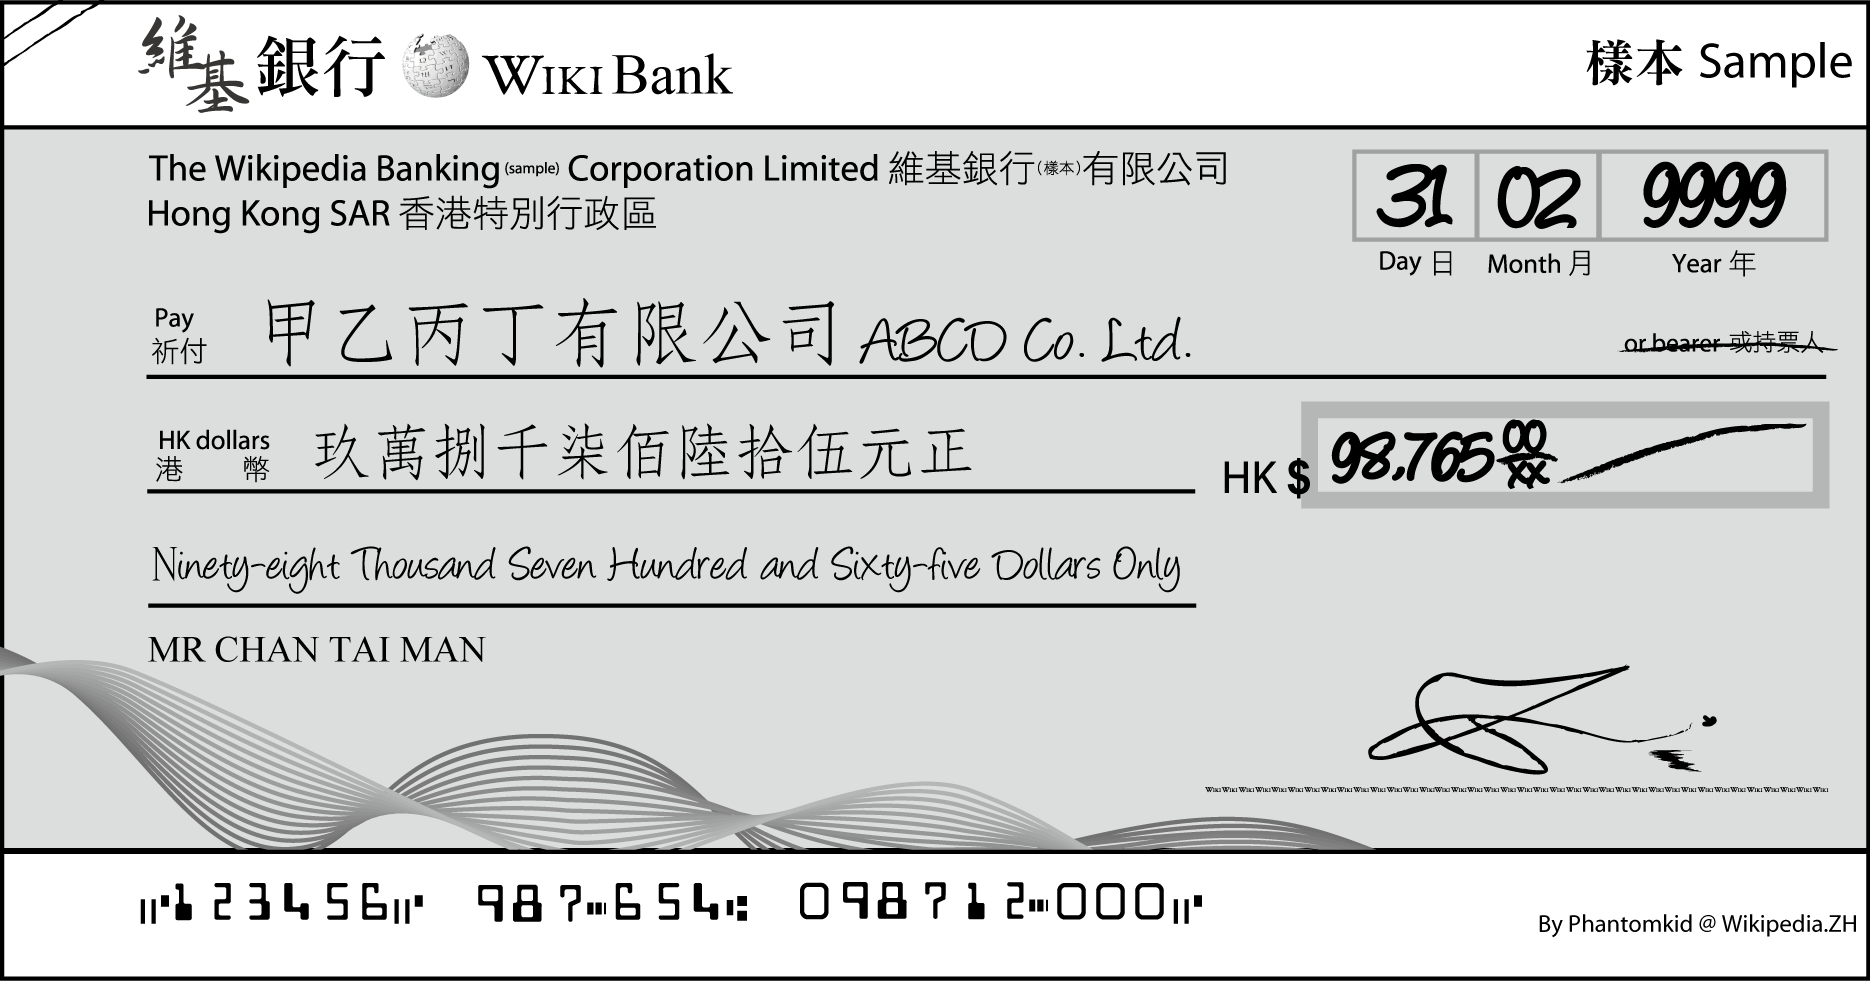 File:HK Cheque Sample.png